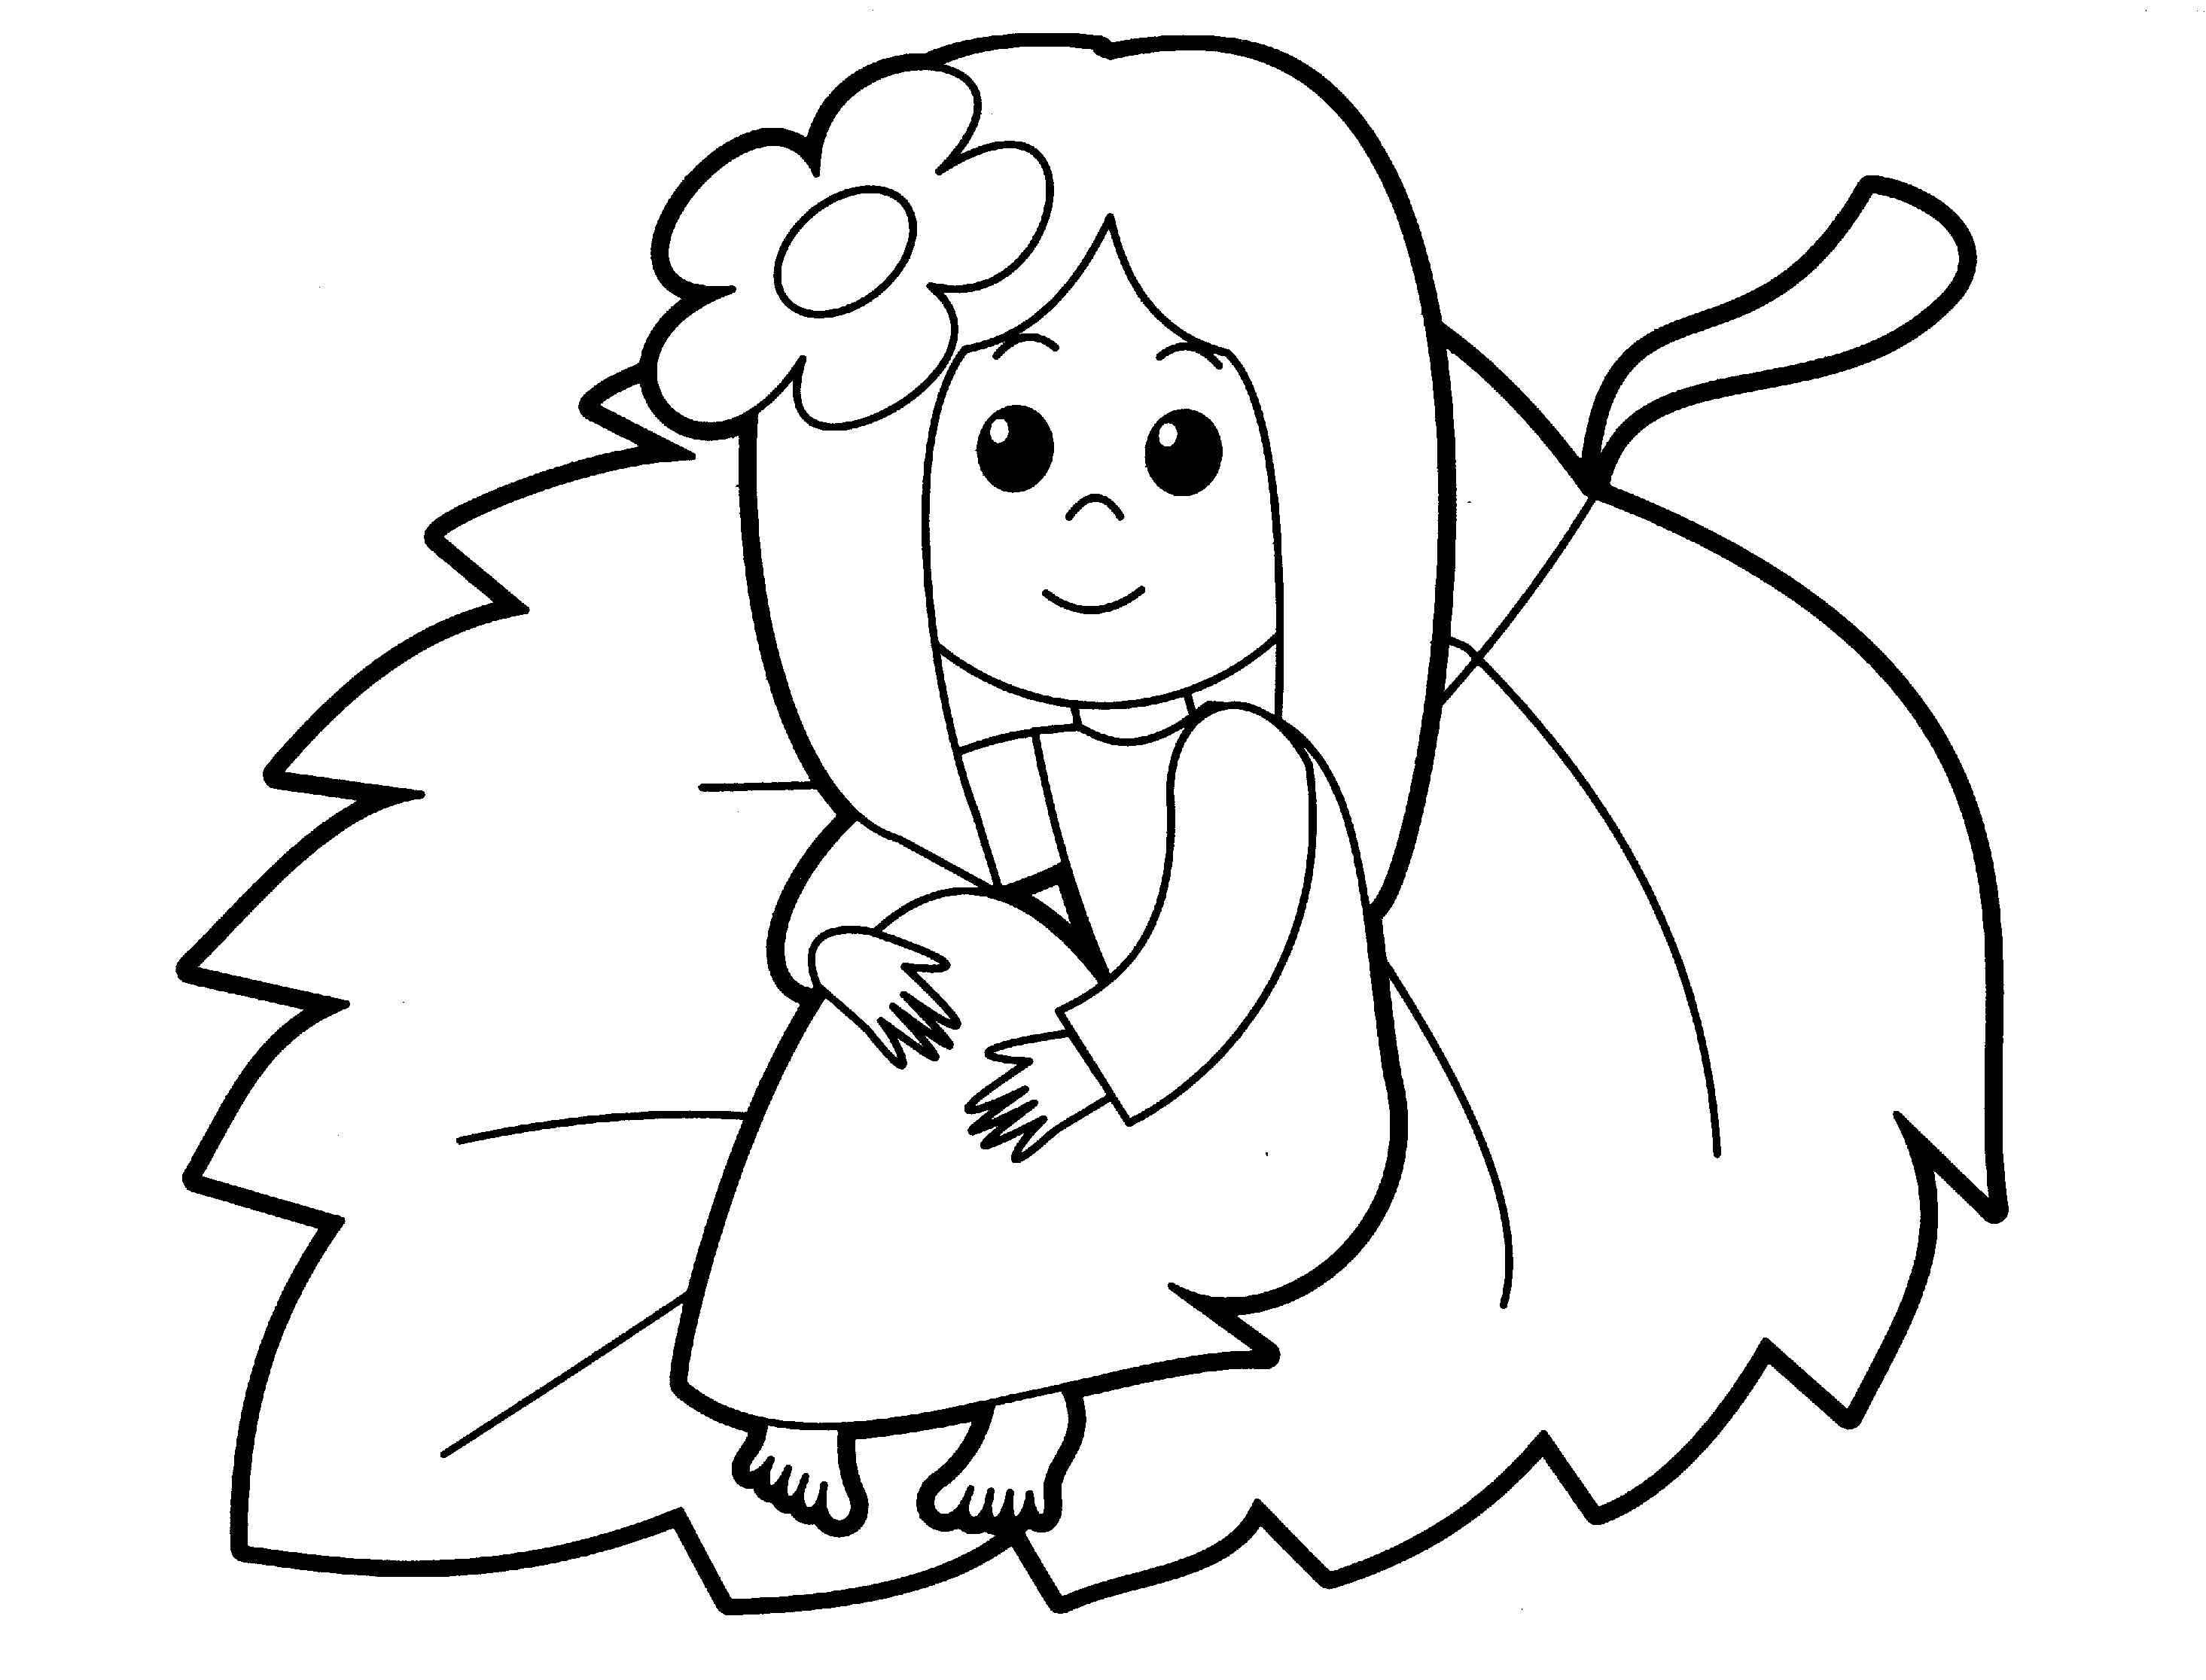 cute newborn baby baby coloring pages free printable baby coloring pages for kids baby pages baby cute newborn coloring